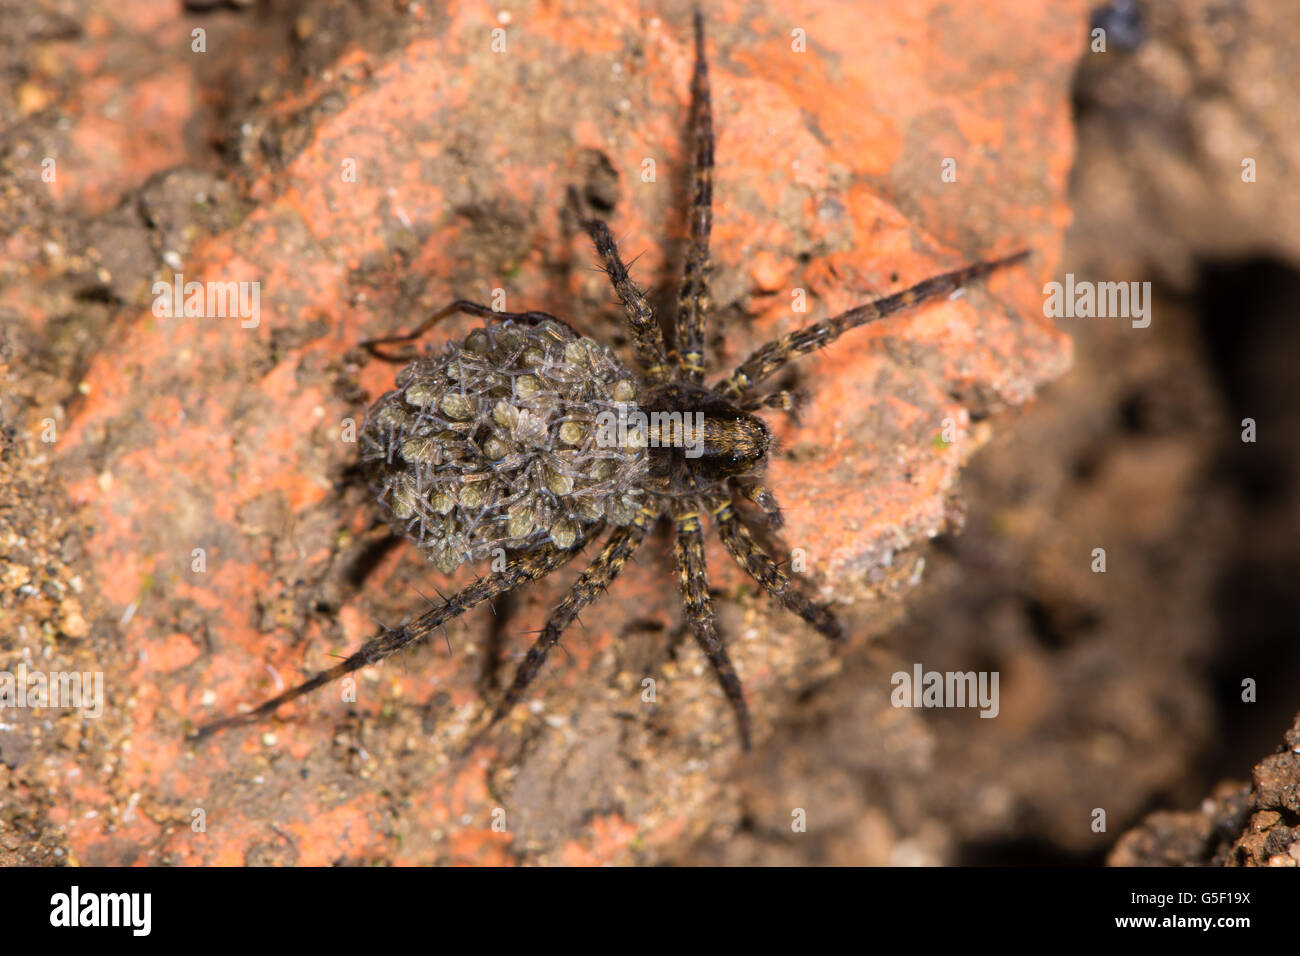 Wolf spider (Pardosa sp.) with spiderlings. Female spider carrying young on abdomen, in the family Lycosidae - Stock Image